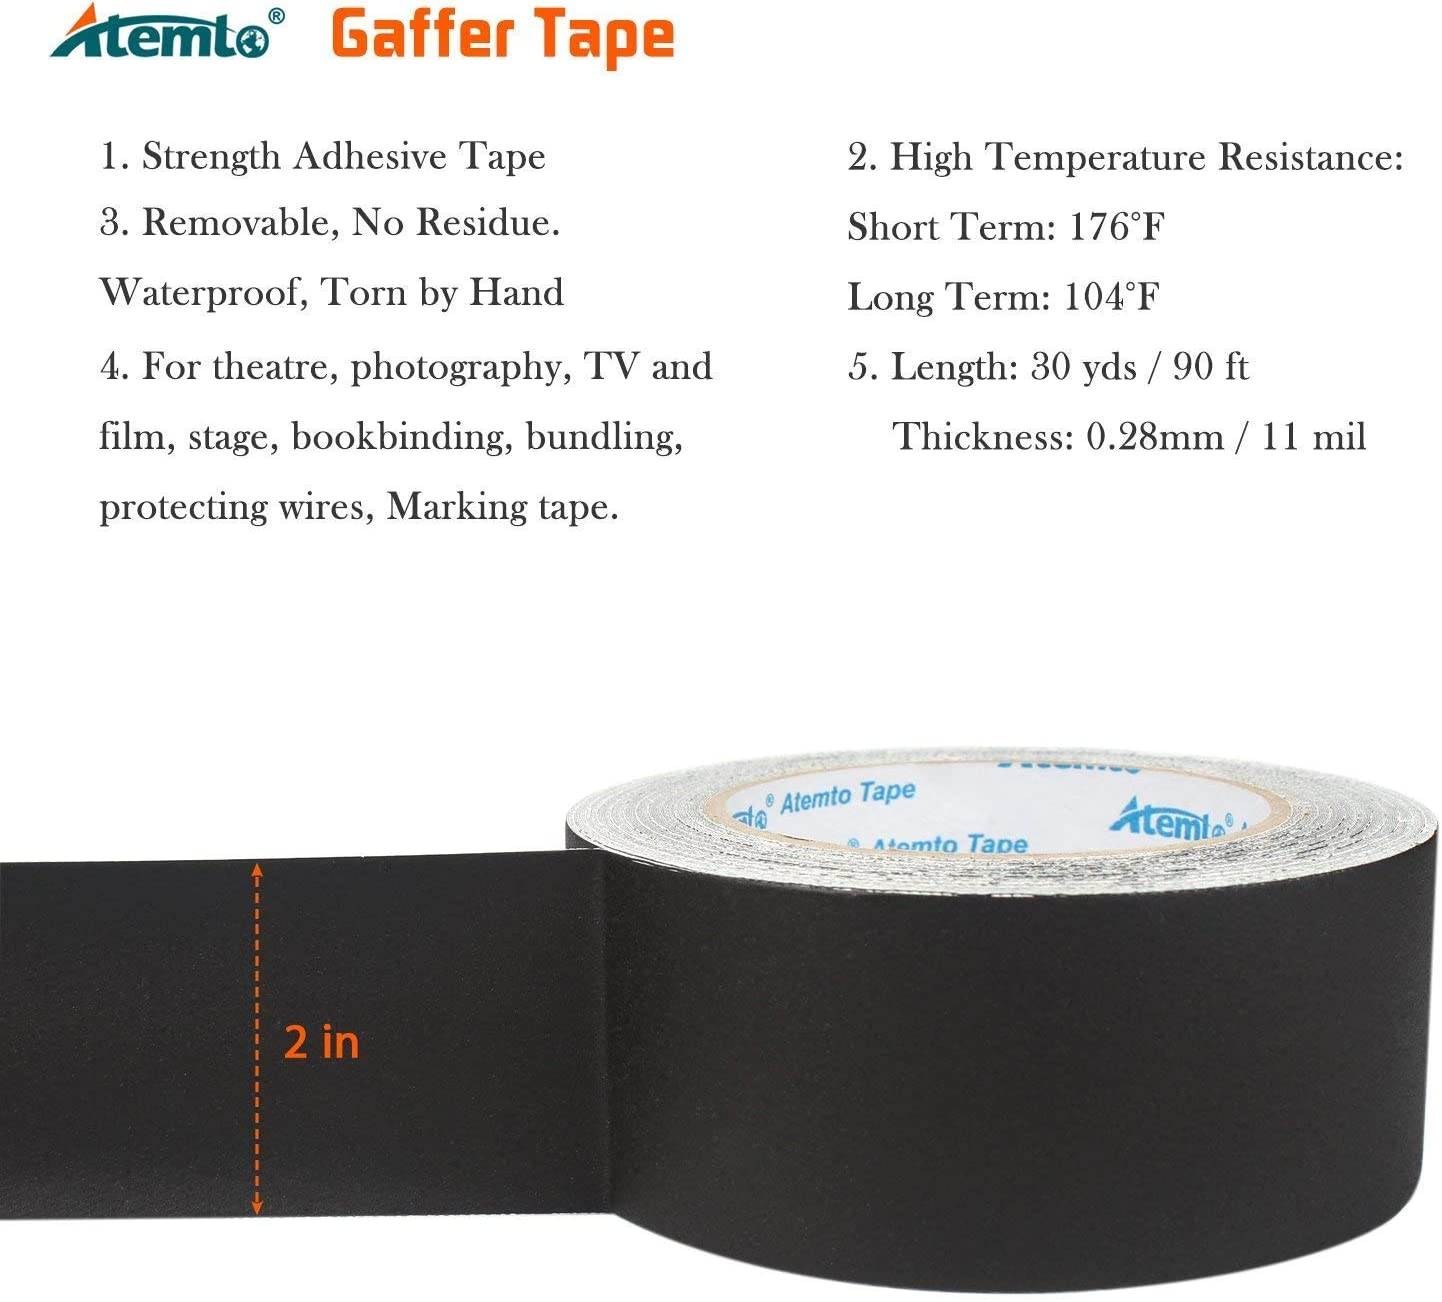 Atemto Gaffer Tape Black 2 inch /× 30 Yards Heavy Duty Non Reflective Adhesive Professional Gaffers Tape Easy to Tear Removable No Residue Better Duct Electrical Gaffers Stage Tape